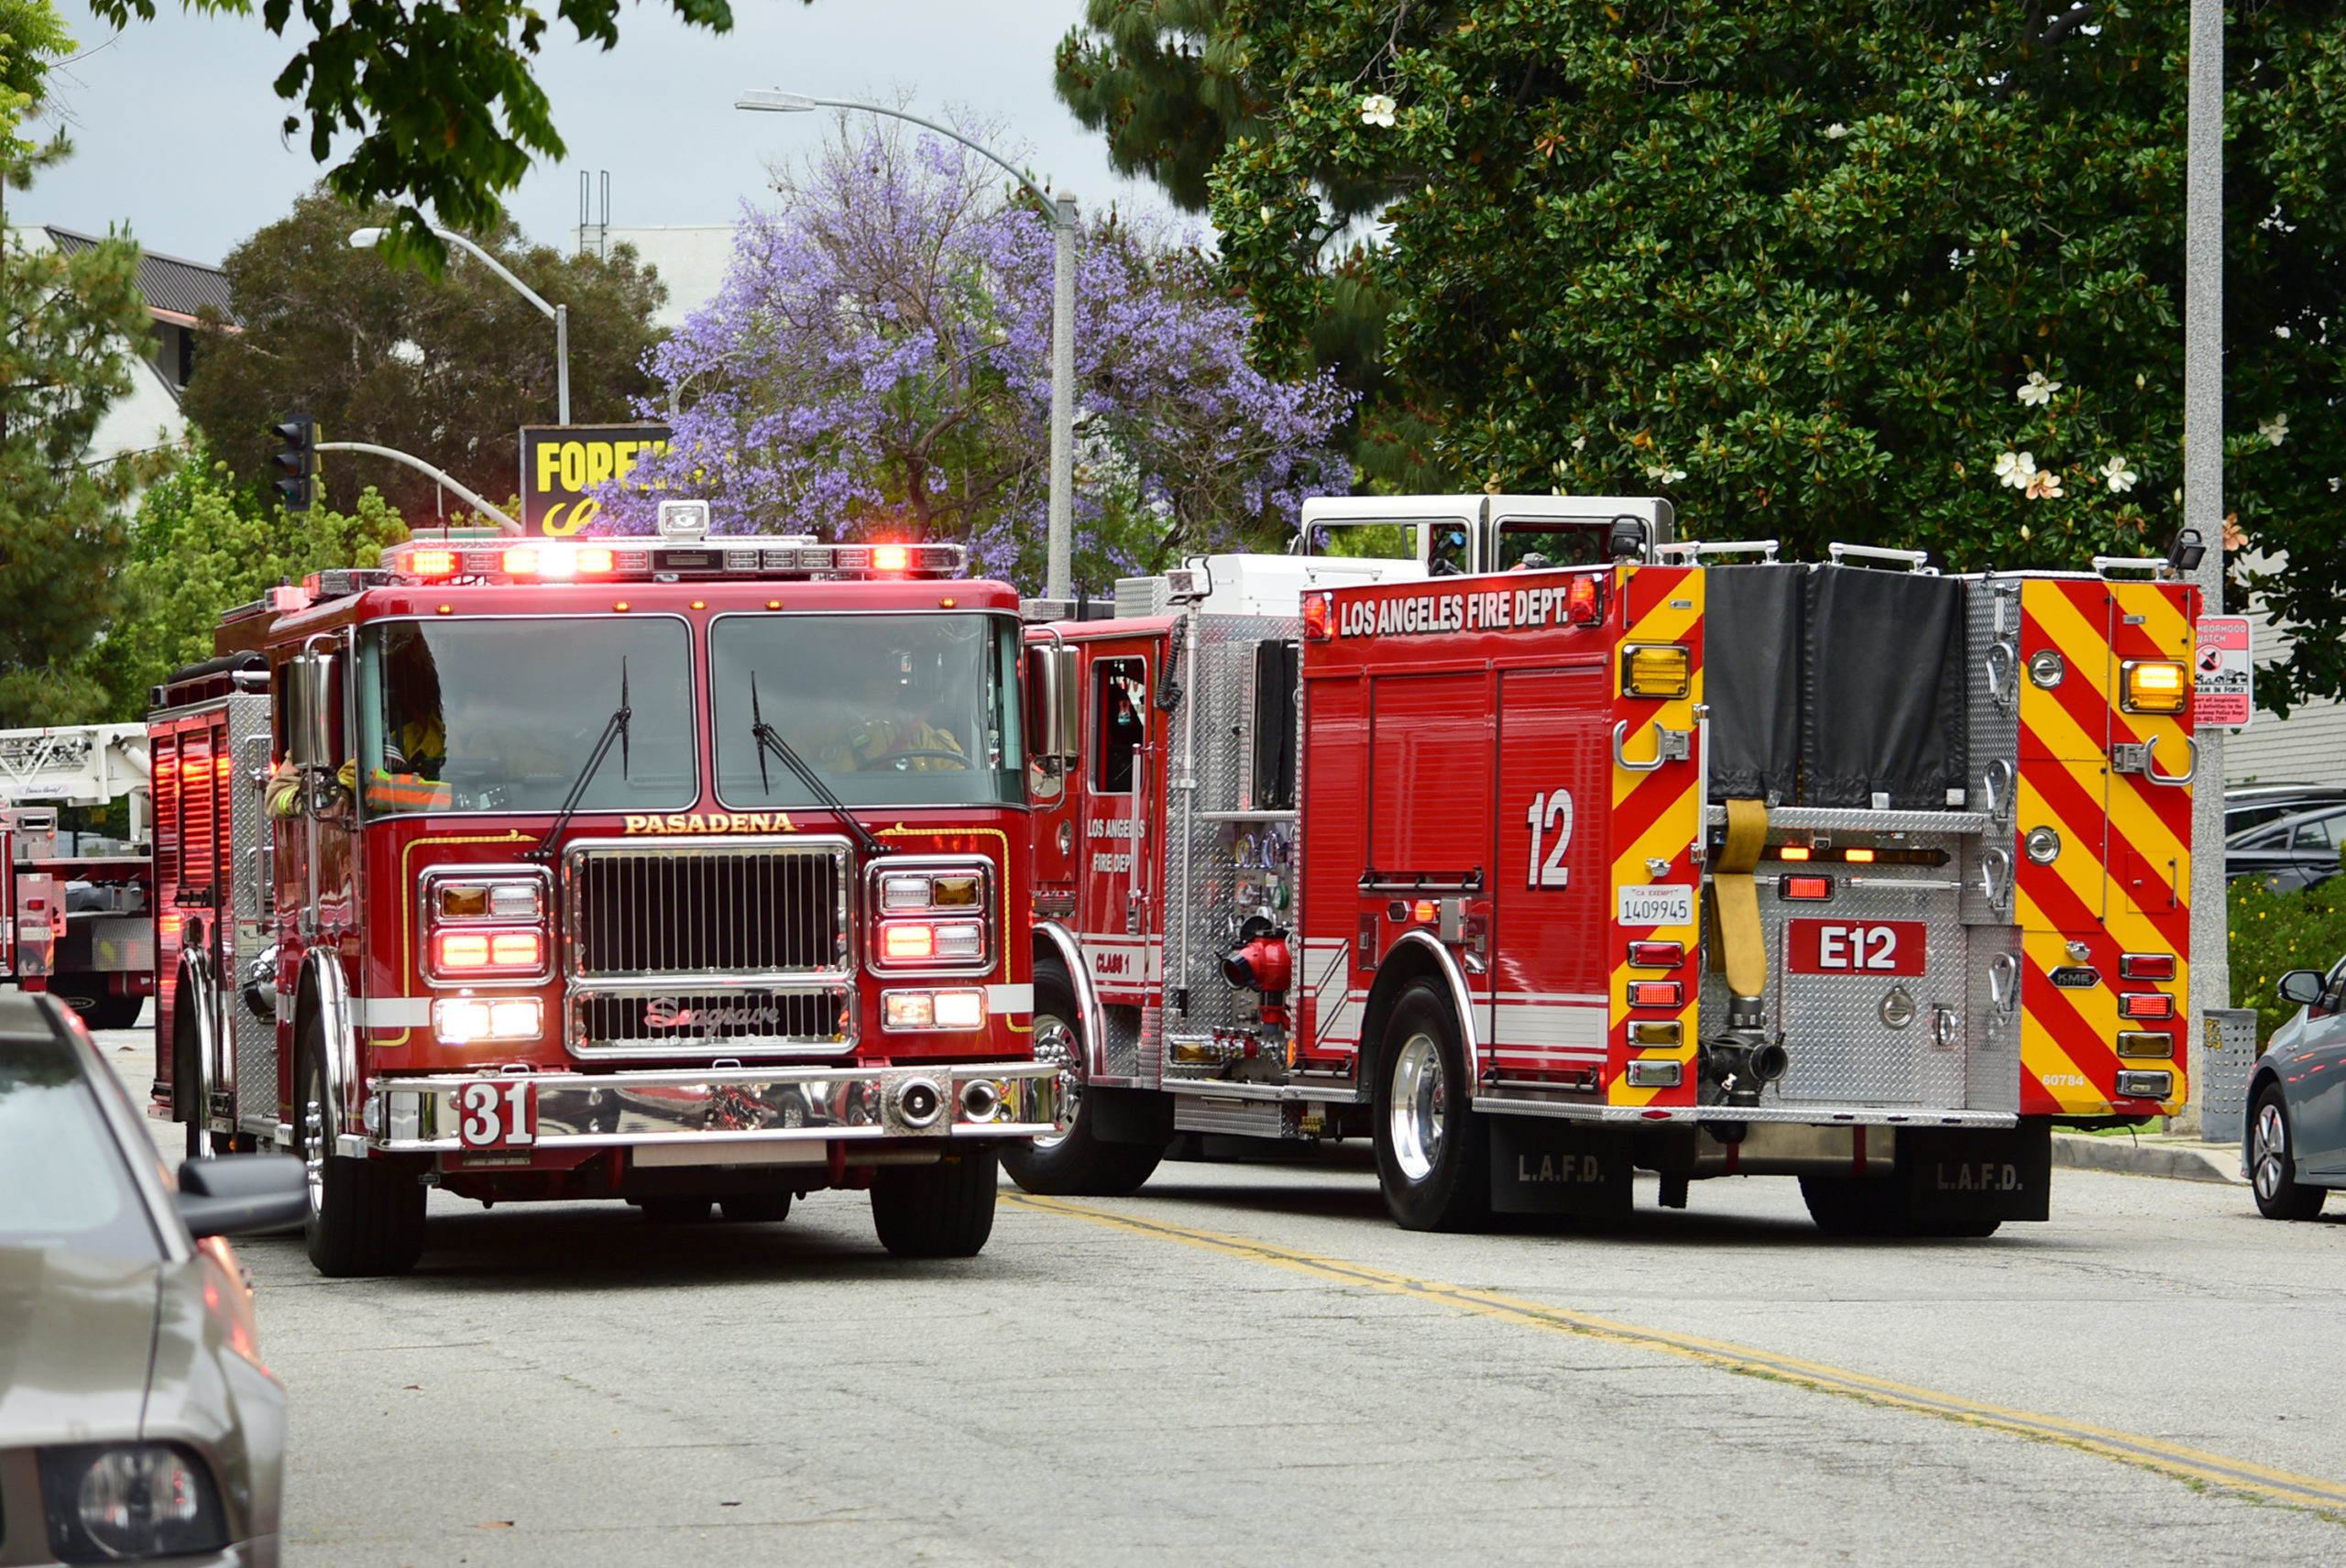 south-pasadena-news-06-05-2020-spfd-house-fire-monterey-road-los-angeles-11